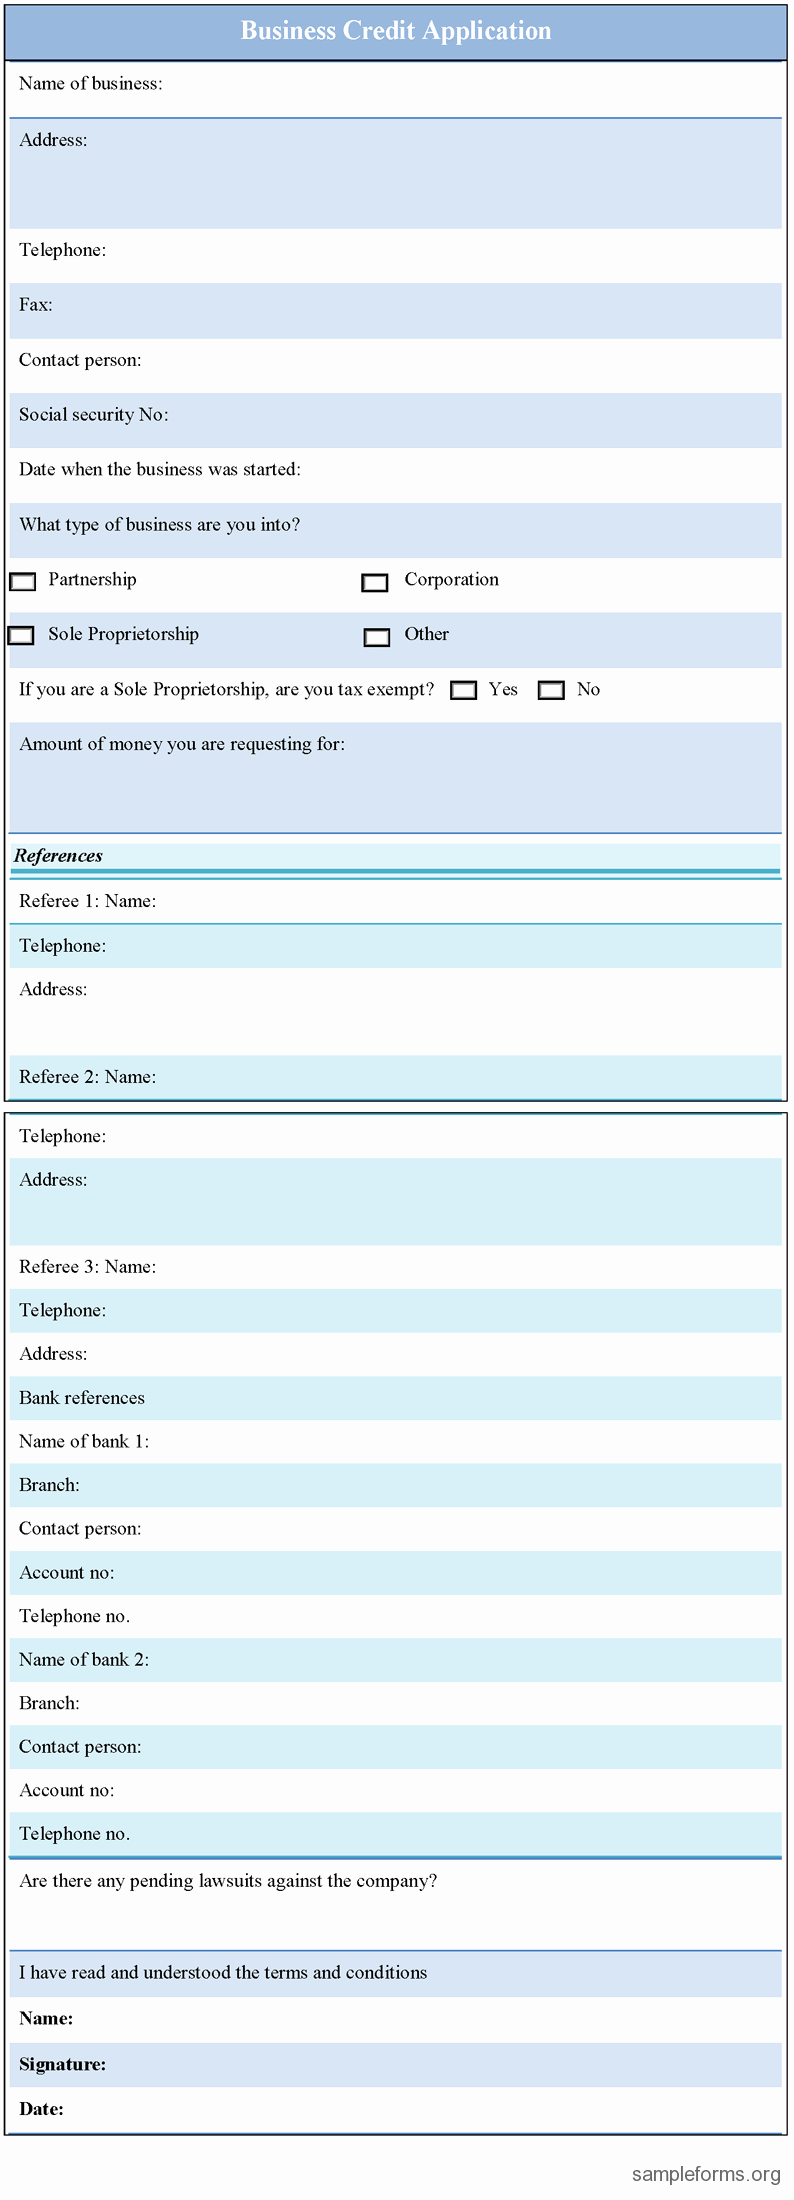 Credit Application form for Business Fresh Business License Application form Sample forms